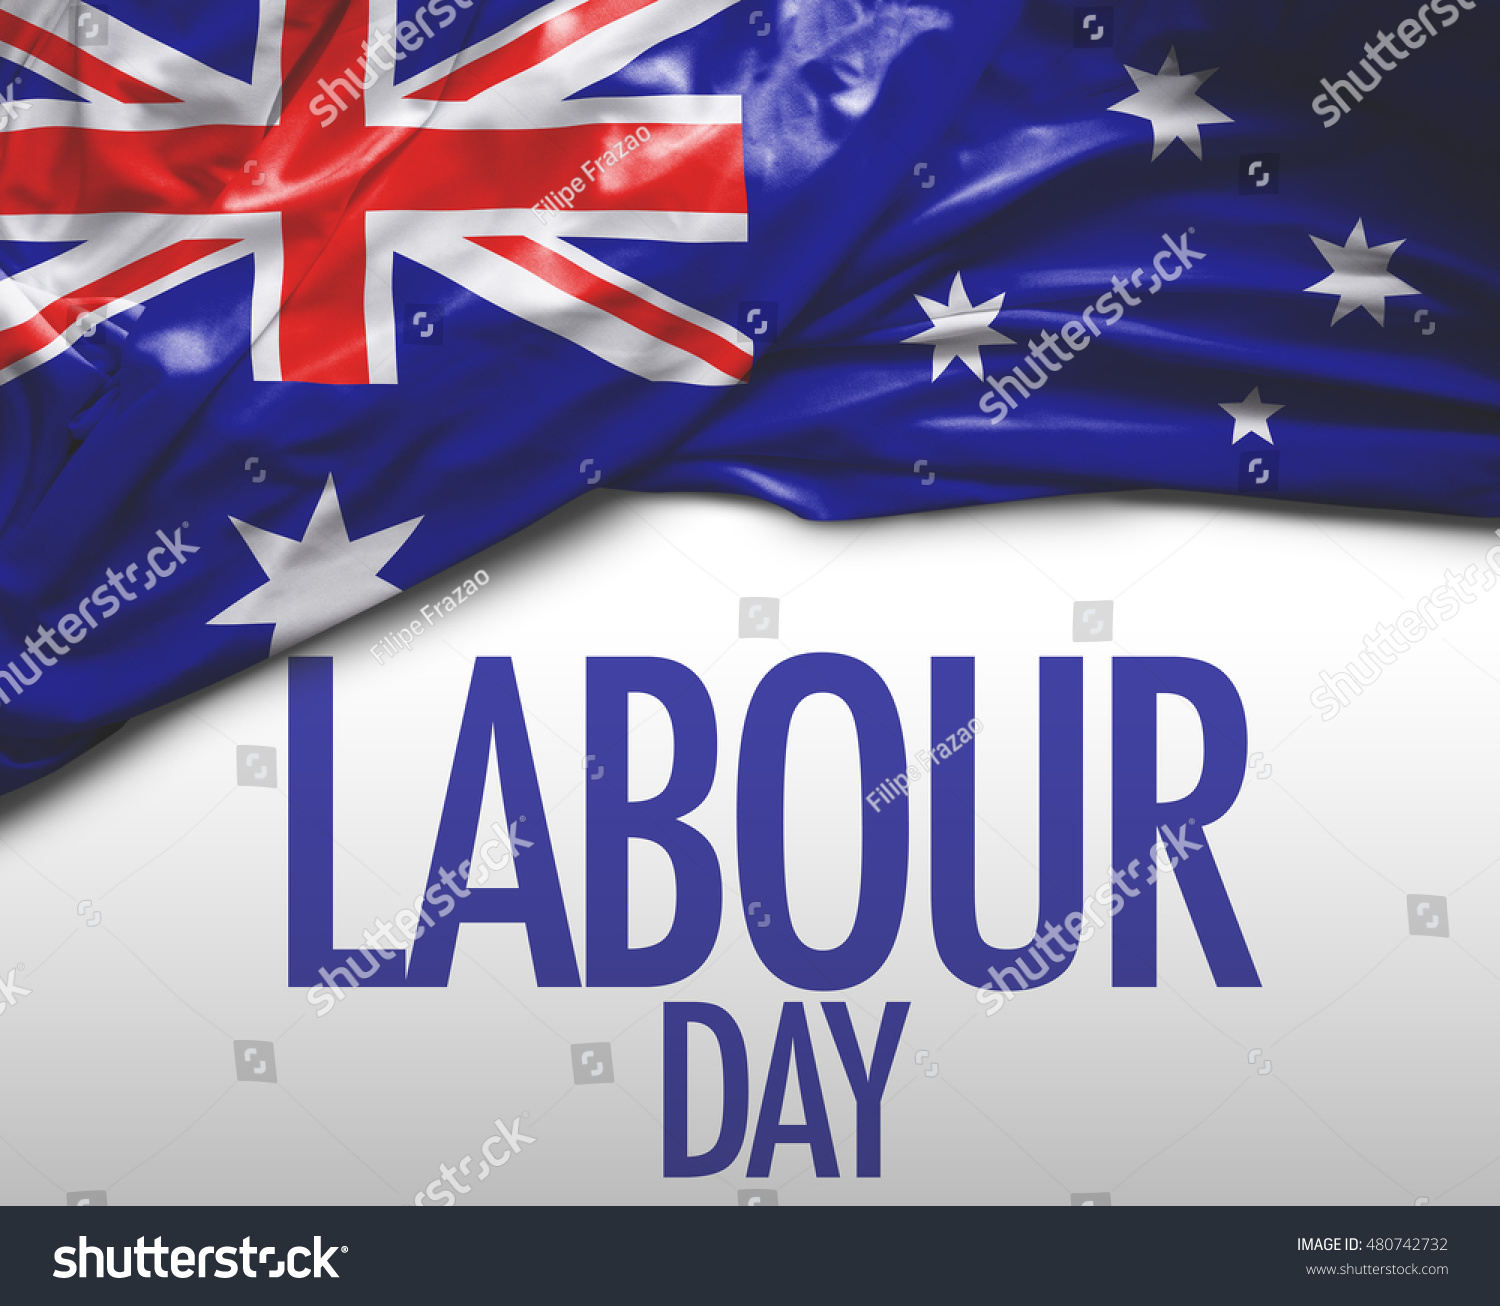 What is the date for labor day in Australia